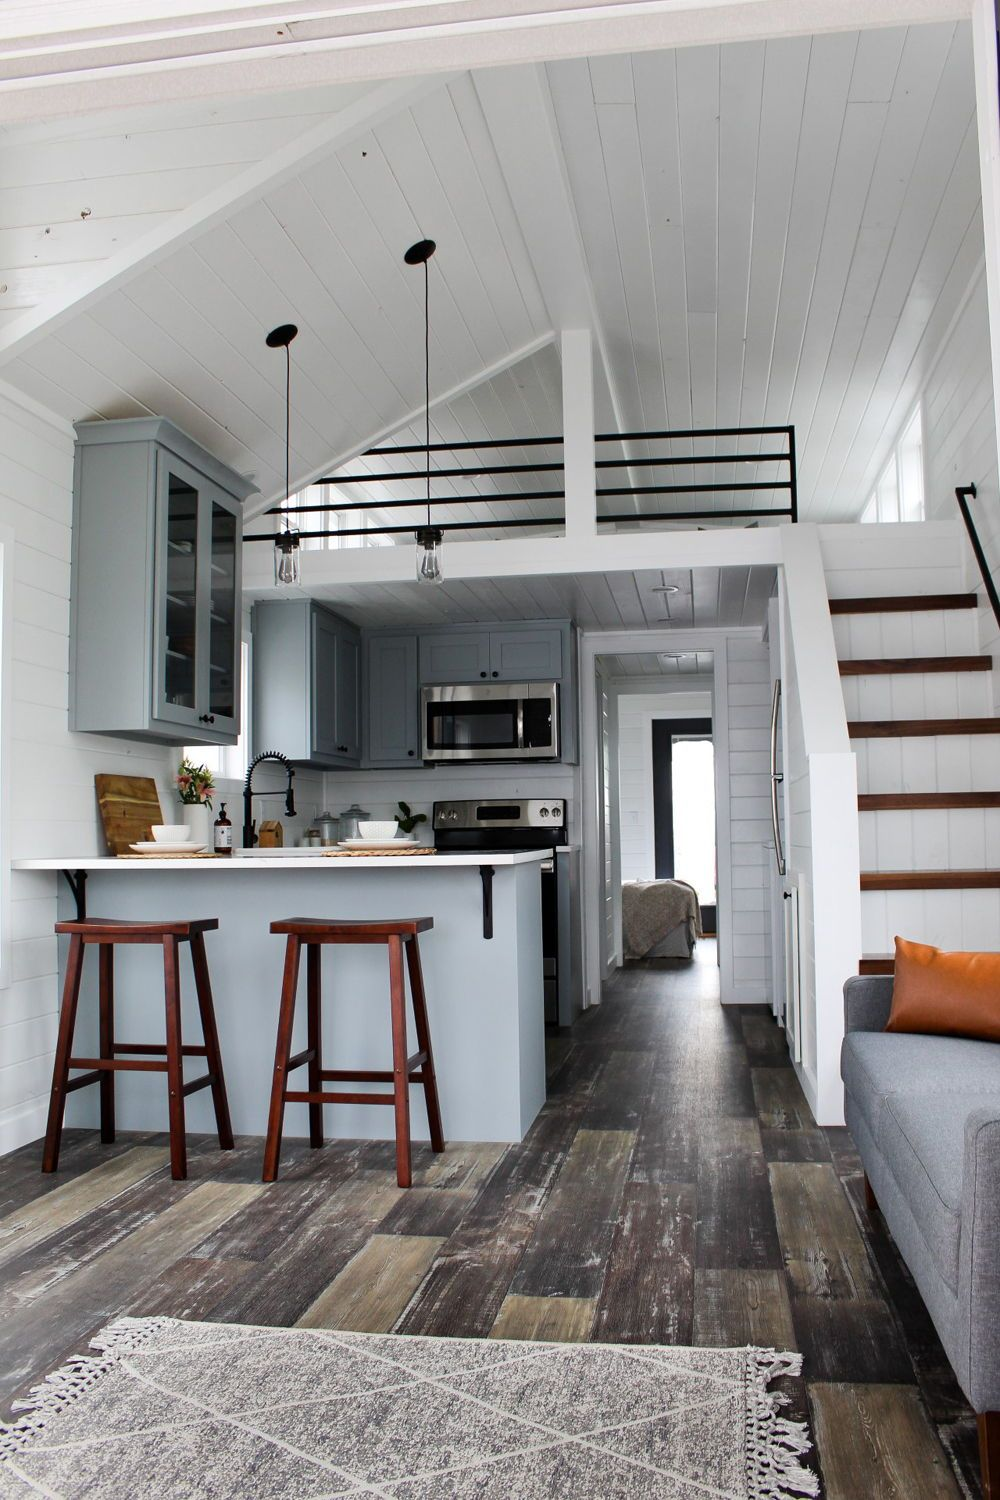 Zion by Mustard Seed Tiny Homes - Tiny Living